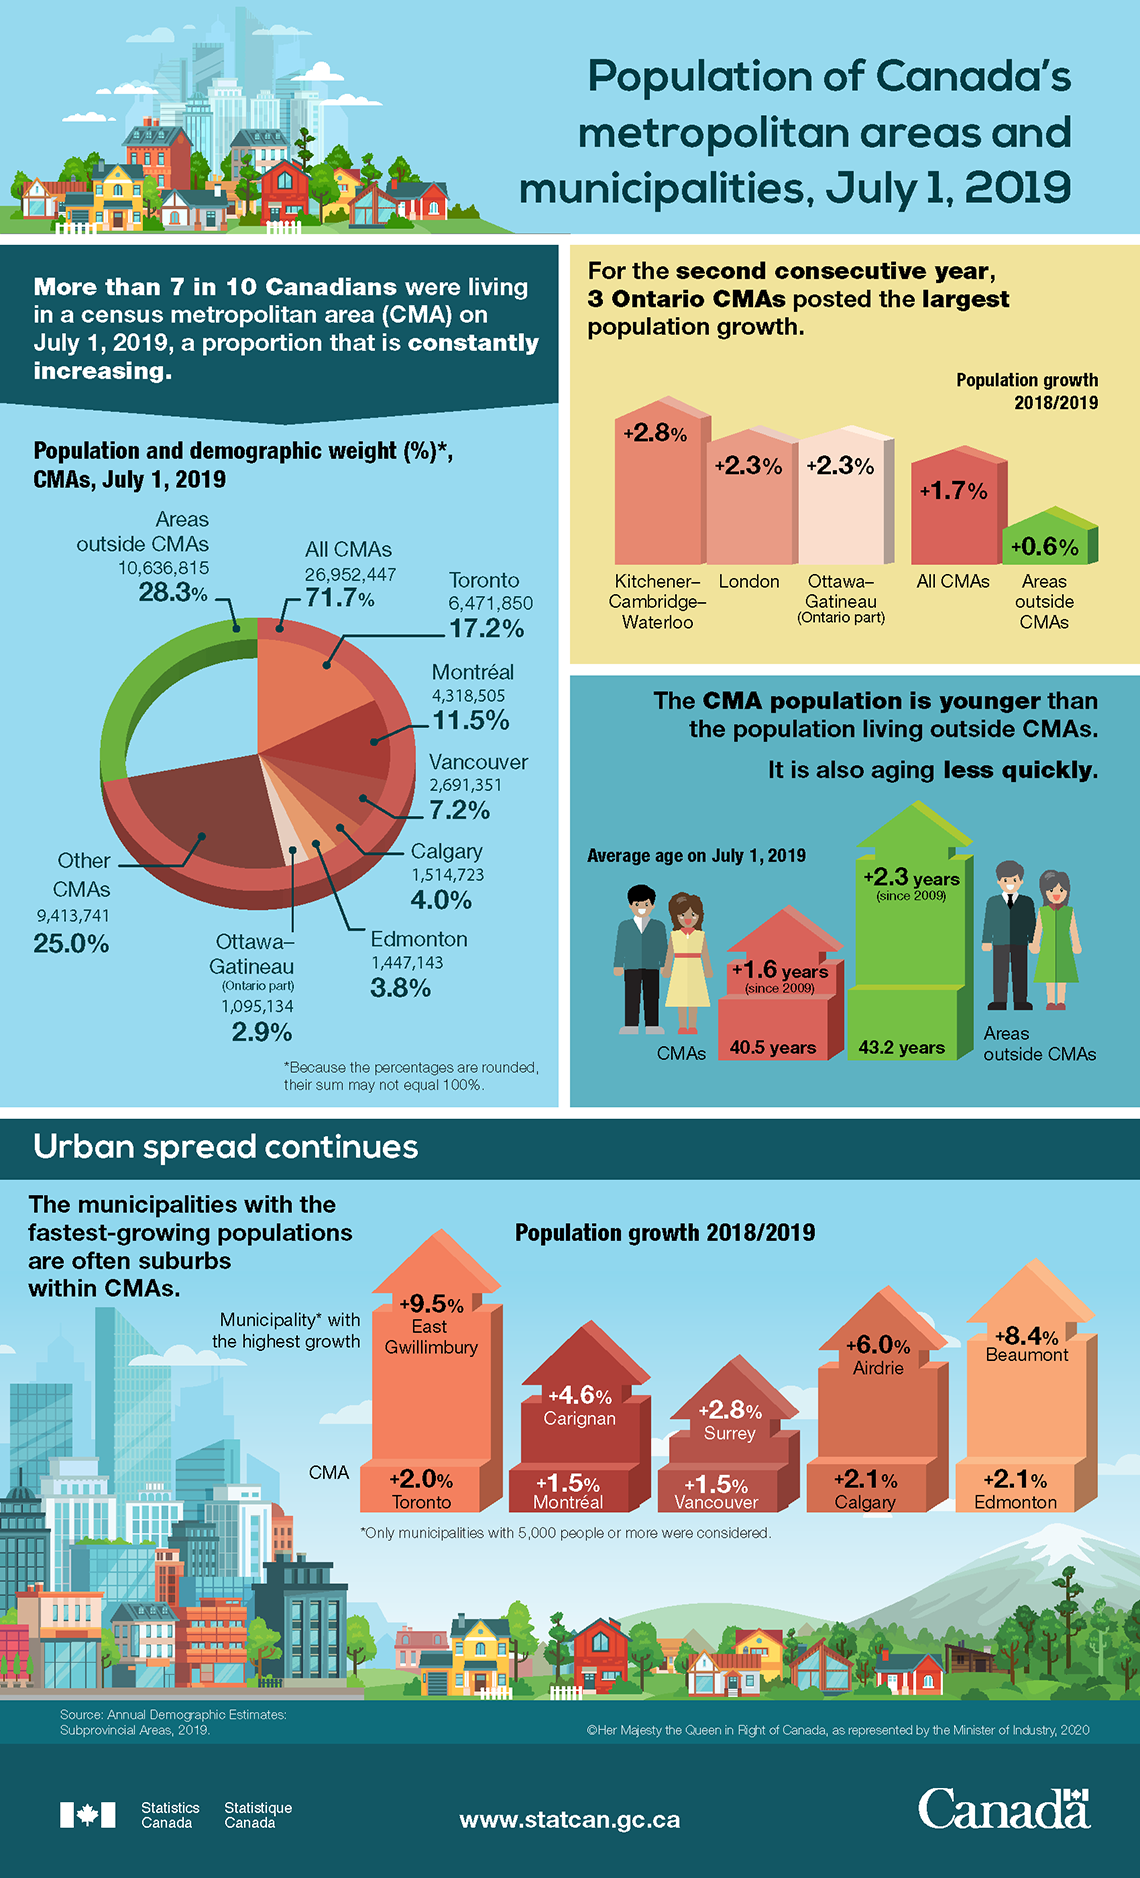 Infographic: Population of Canada's metropolitan areas and municipalities, July 1, 2019